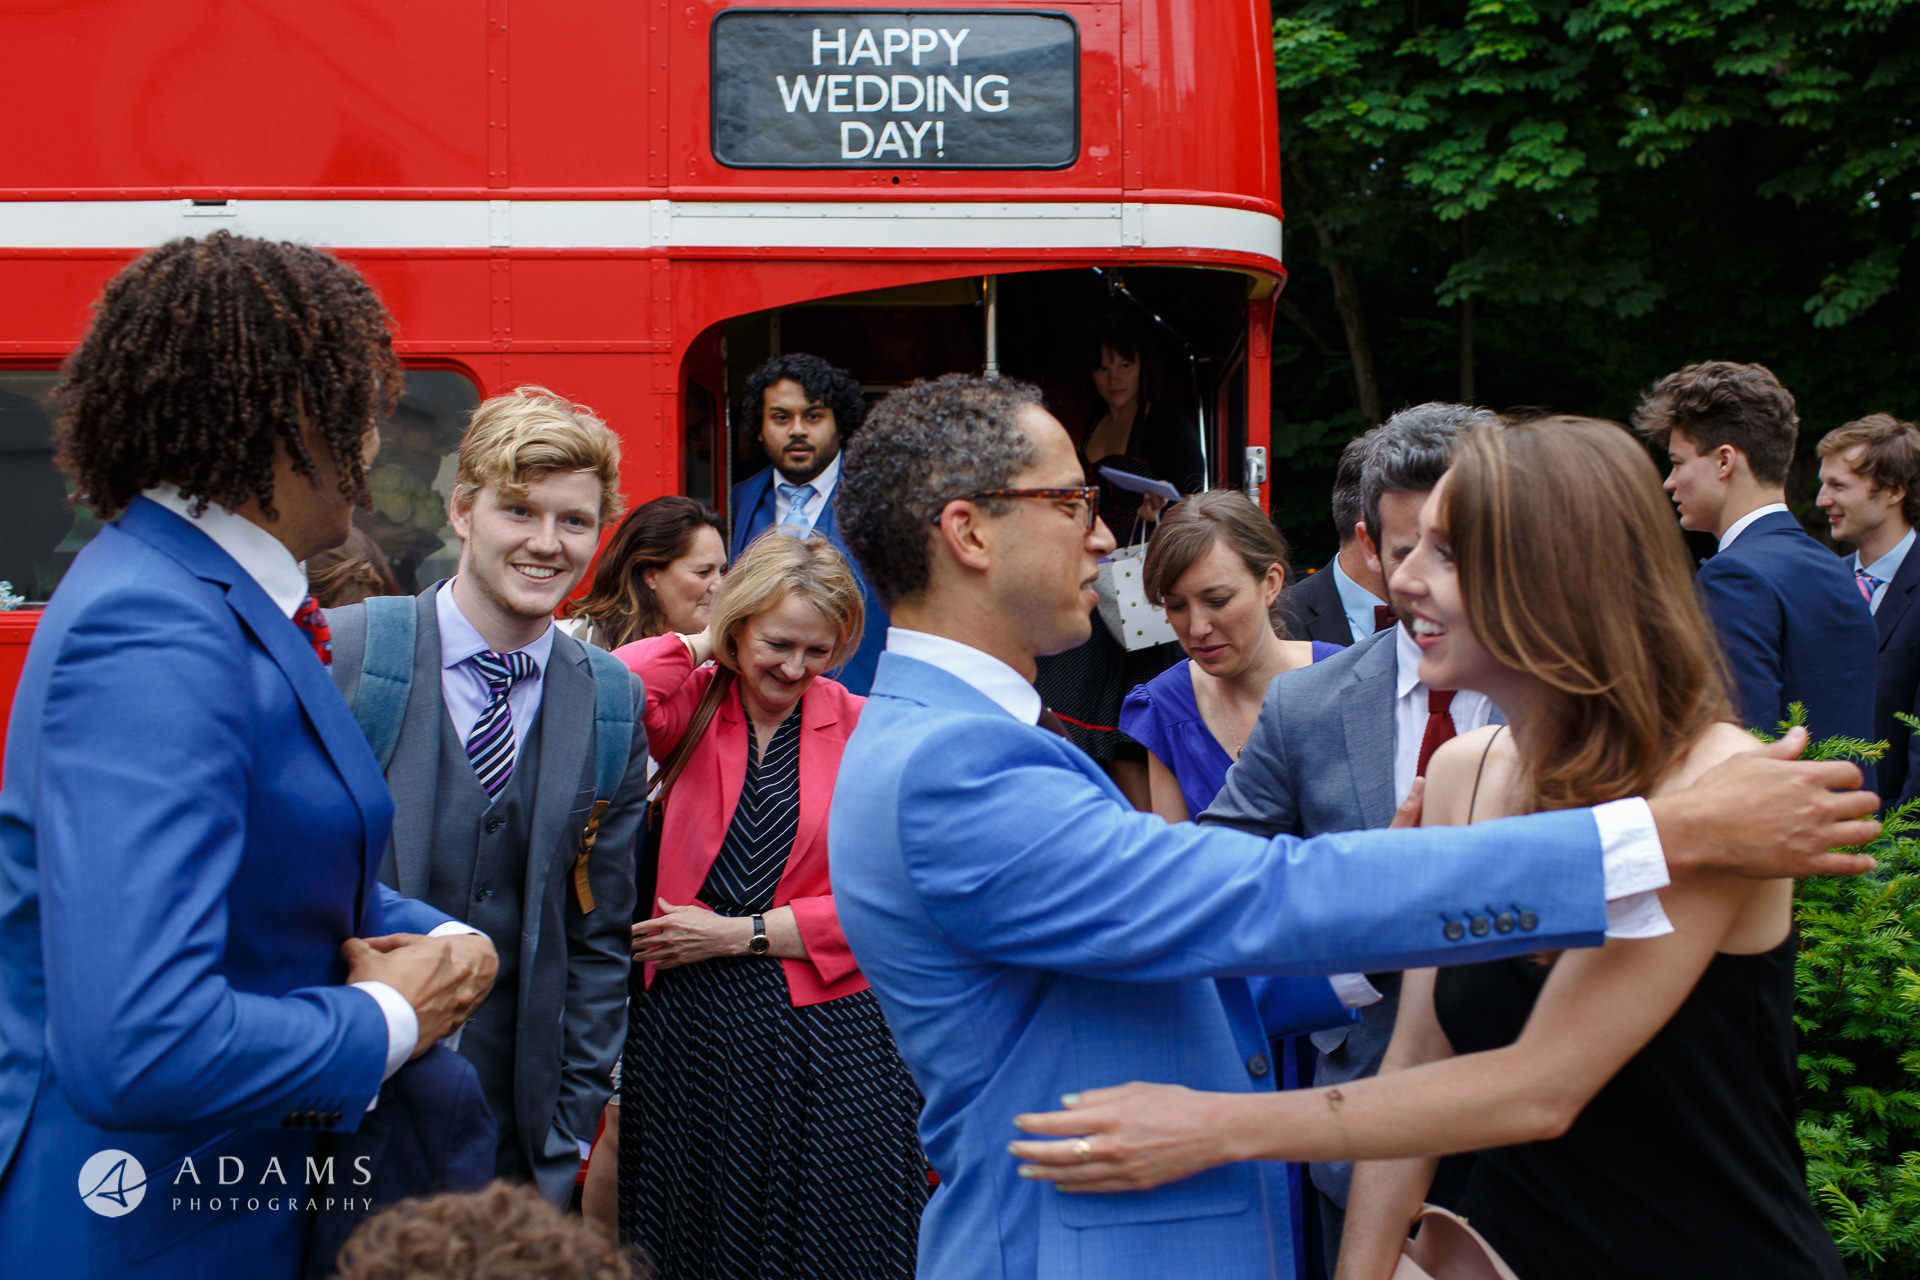 guest arrive in a red bus to Morden Hall